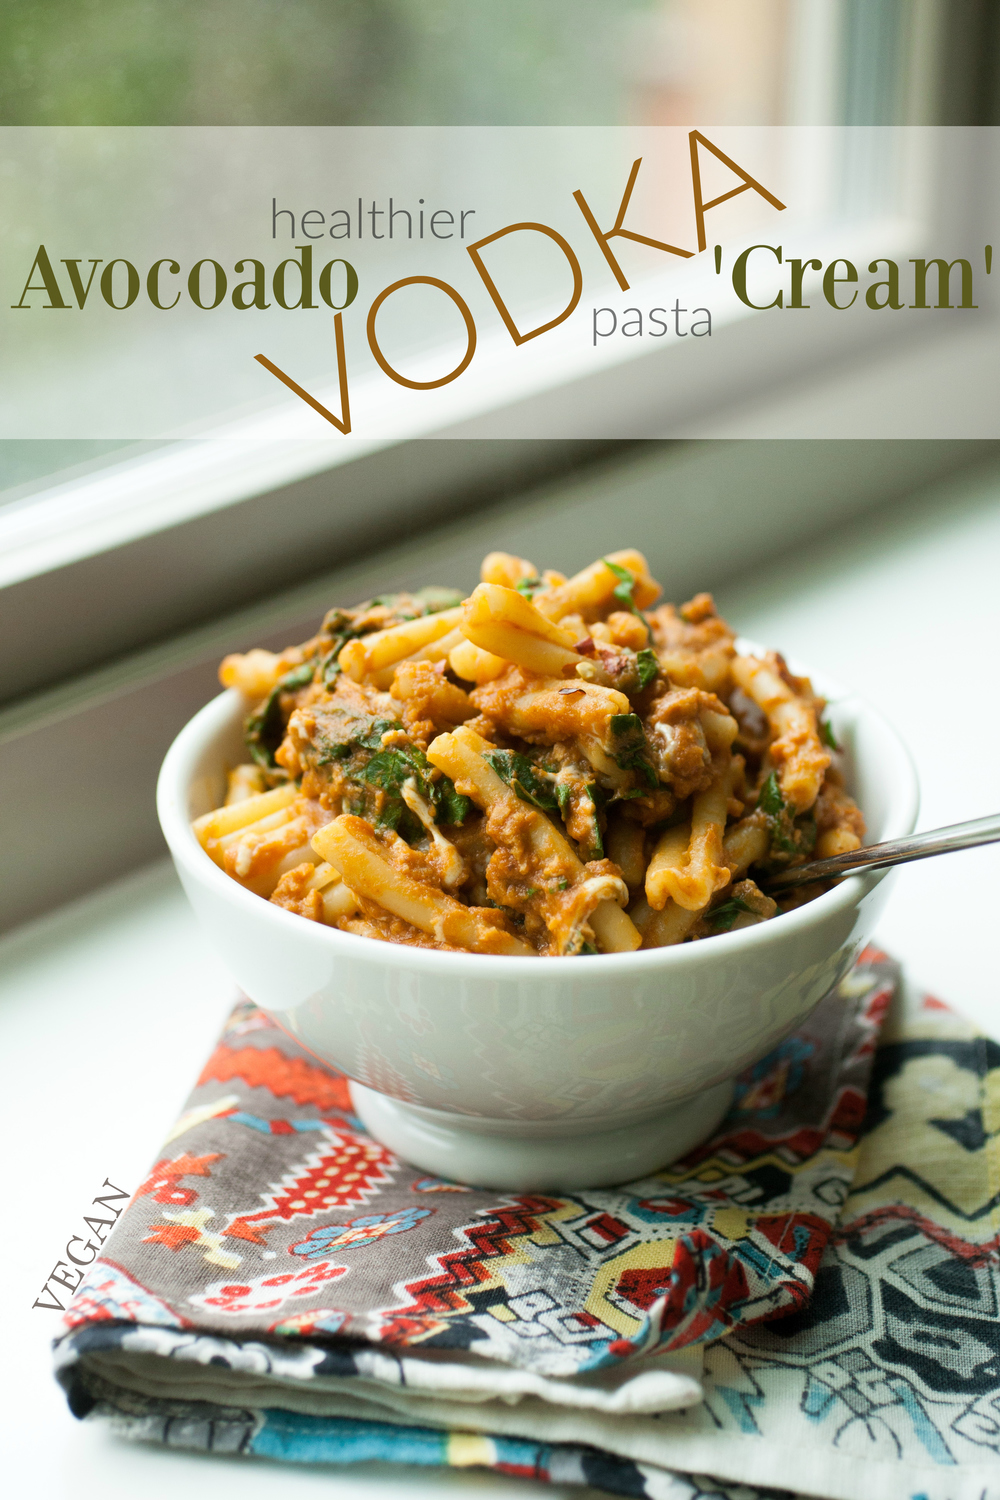 Produce On Parade - Healthier Avocado Vodka 'Cream' Pasta + Classico Riserva Giveaway - A healthy and modern twist on traditional vodka cream pasta. Avocado stands in for heavy cream, smokey TVP packs a vegan protein punch, and swiss chard gives itself for a nutritional boost. This pasta is everything; creamy, meaty, cheesy, and so darn delicious. Whips up in the time it takes to boil the noodles!